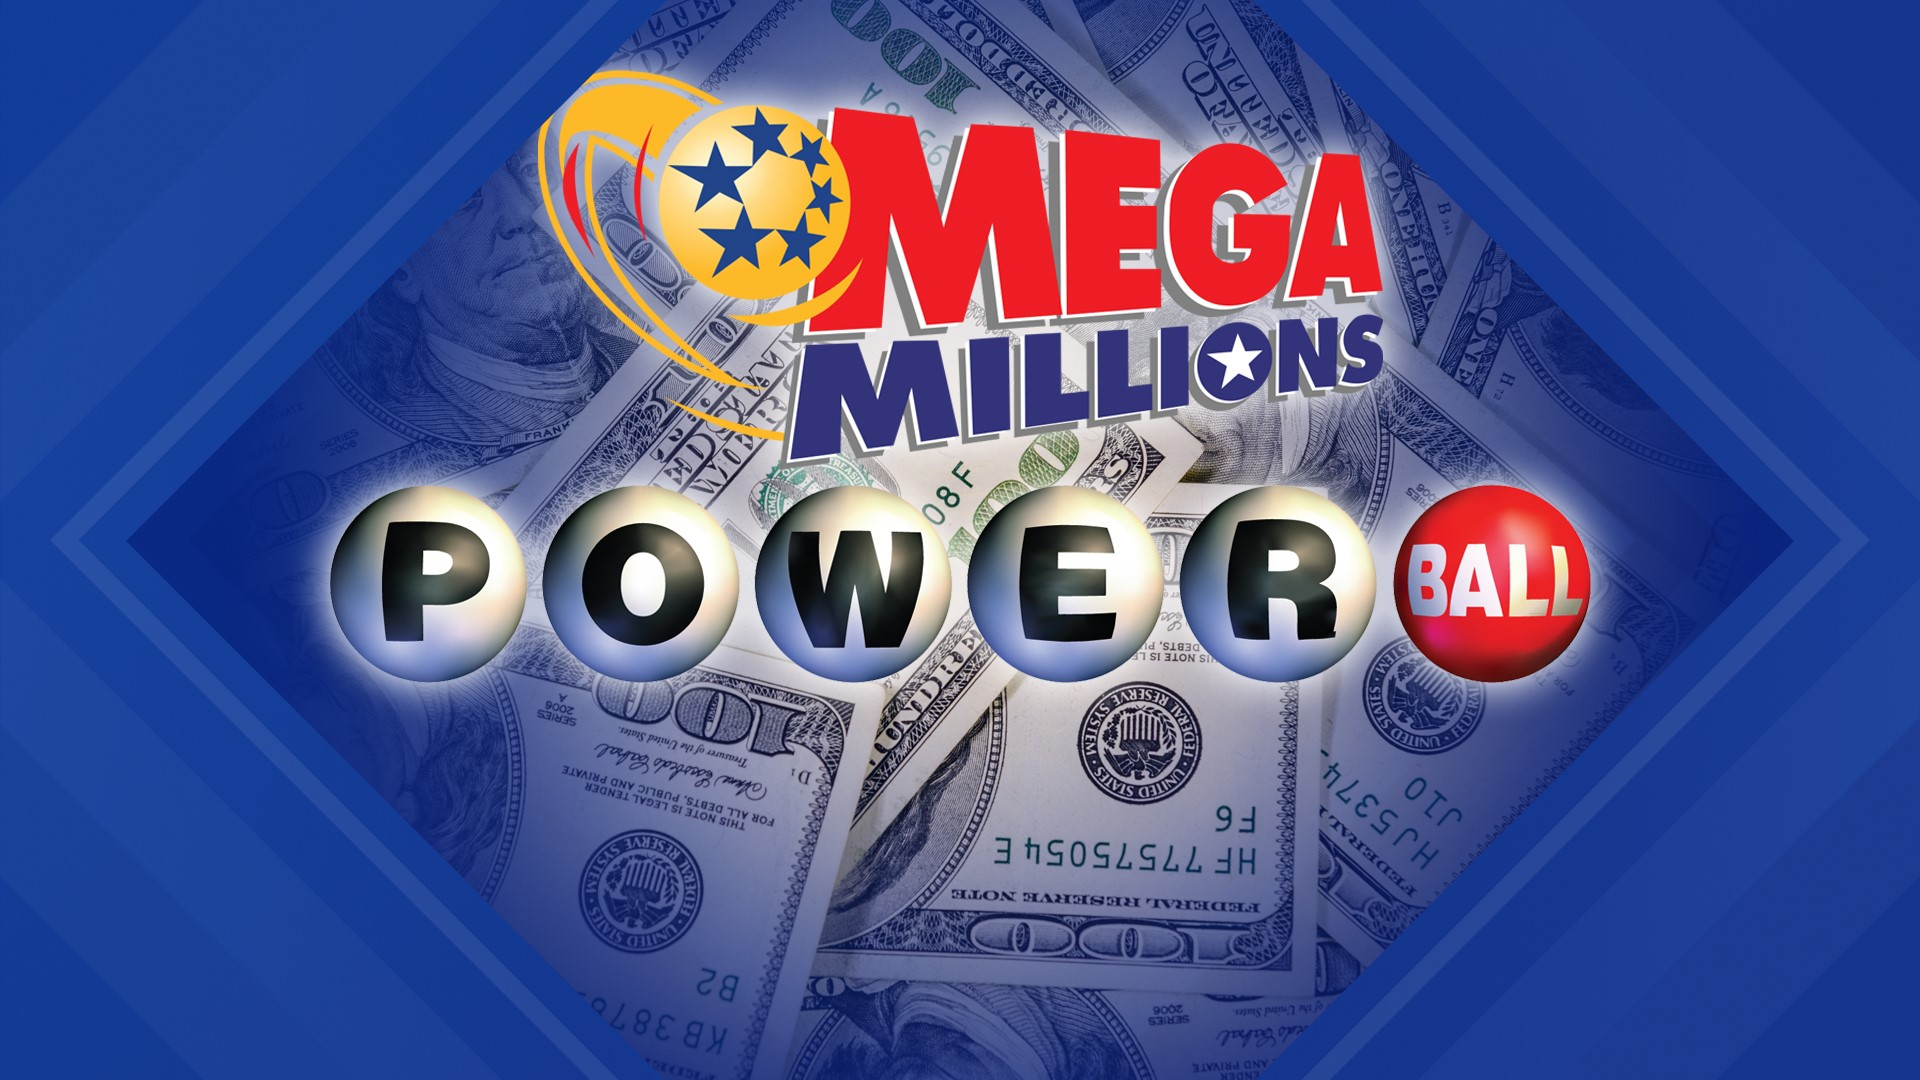 Powerball jackpot jumps to $730M and Mega Millions to $850M | 9news.com